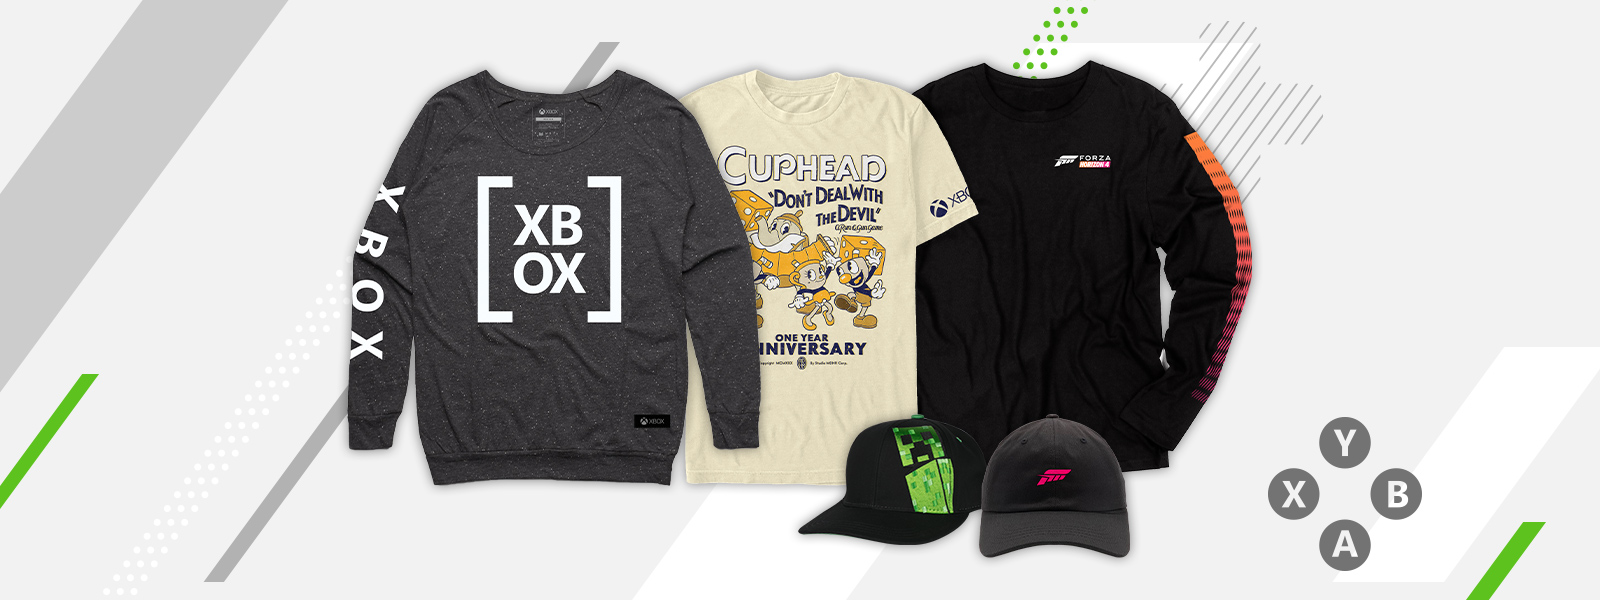 A selection of Xbox Official Gear on sale, including a sweatshirt with Xbox logo, Cuphead and Forza Horizon 4 t-shirts, and ball caps with Minecraft and Forza logos.